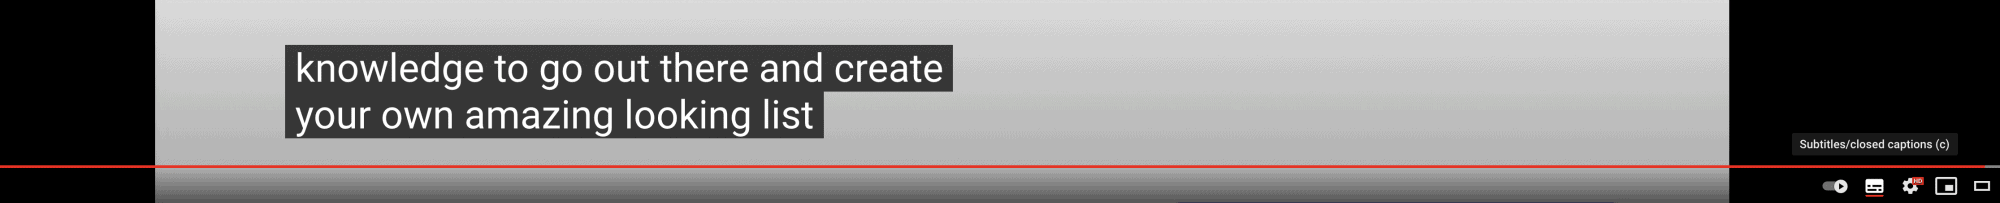 closed captions illustrated on a Youtube video